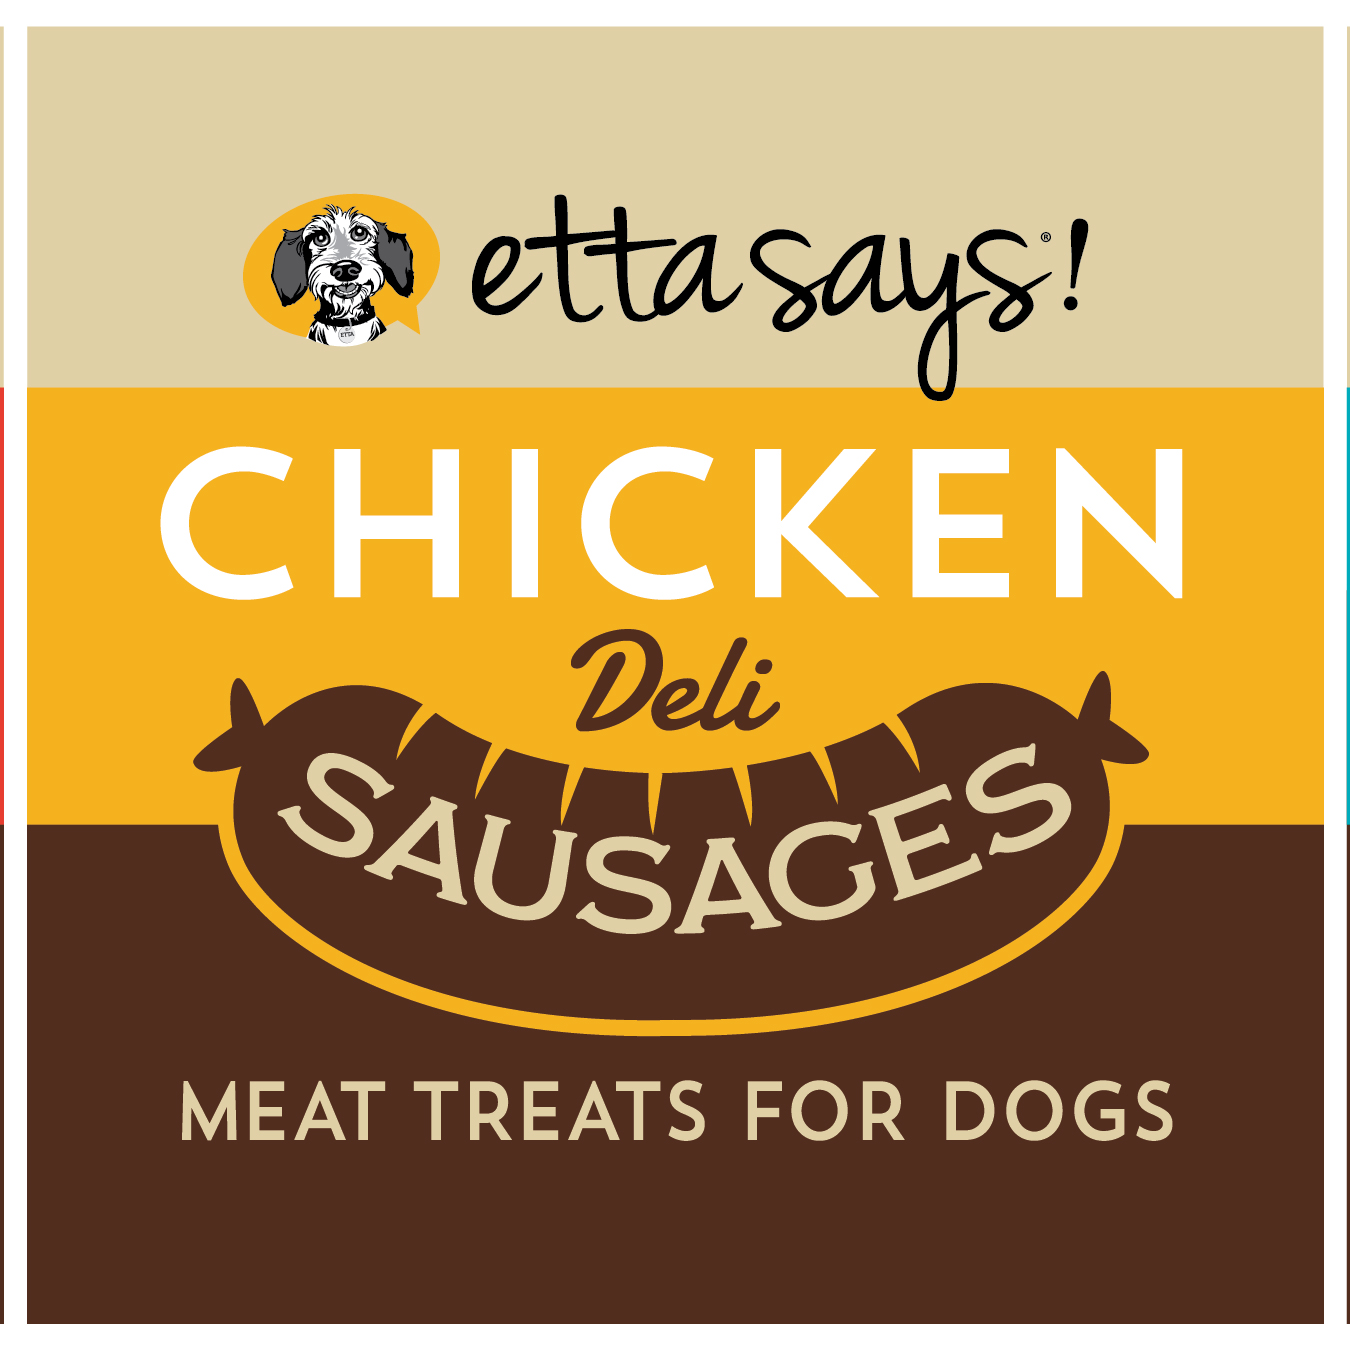 etta says Chicken Sausages